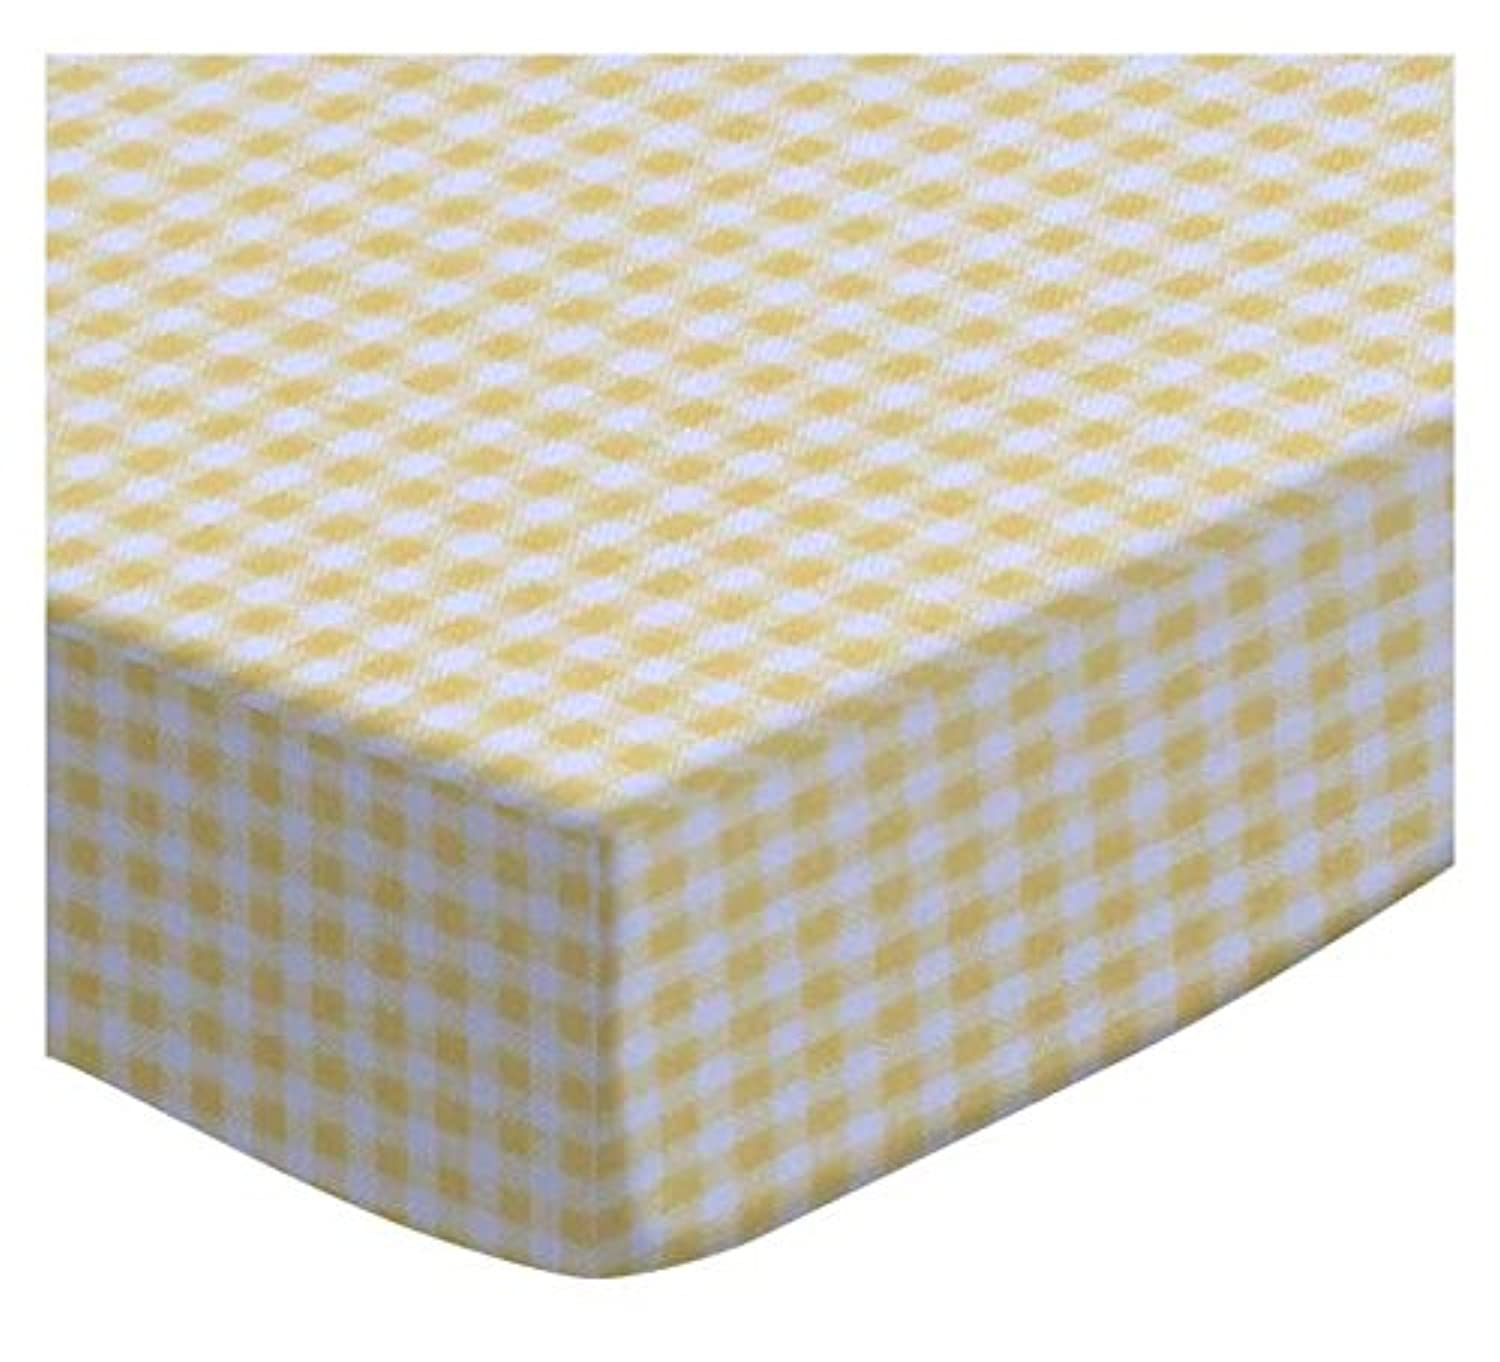 SheetWorld Fitted Square Playard Sheet 37.5 x 37.5 (Fits Joovy) - Primary Yellow Gingham Woven - Made In USA by sheetworld